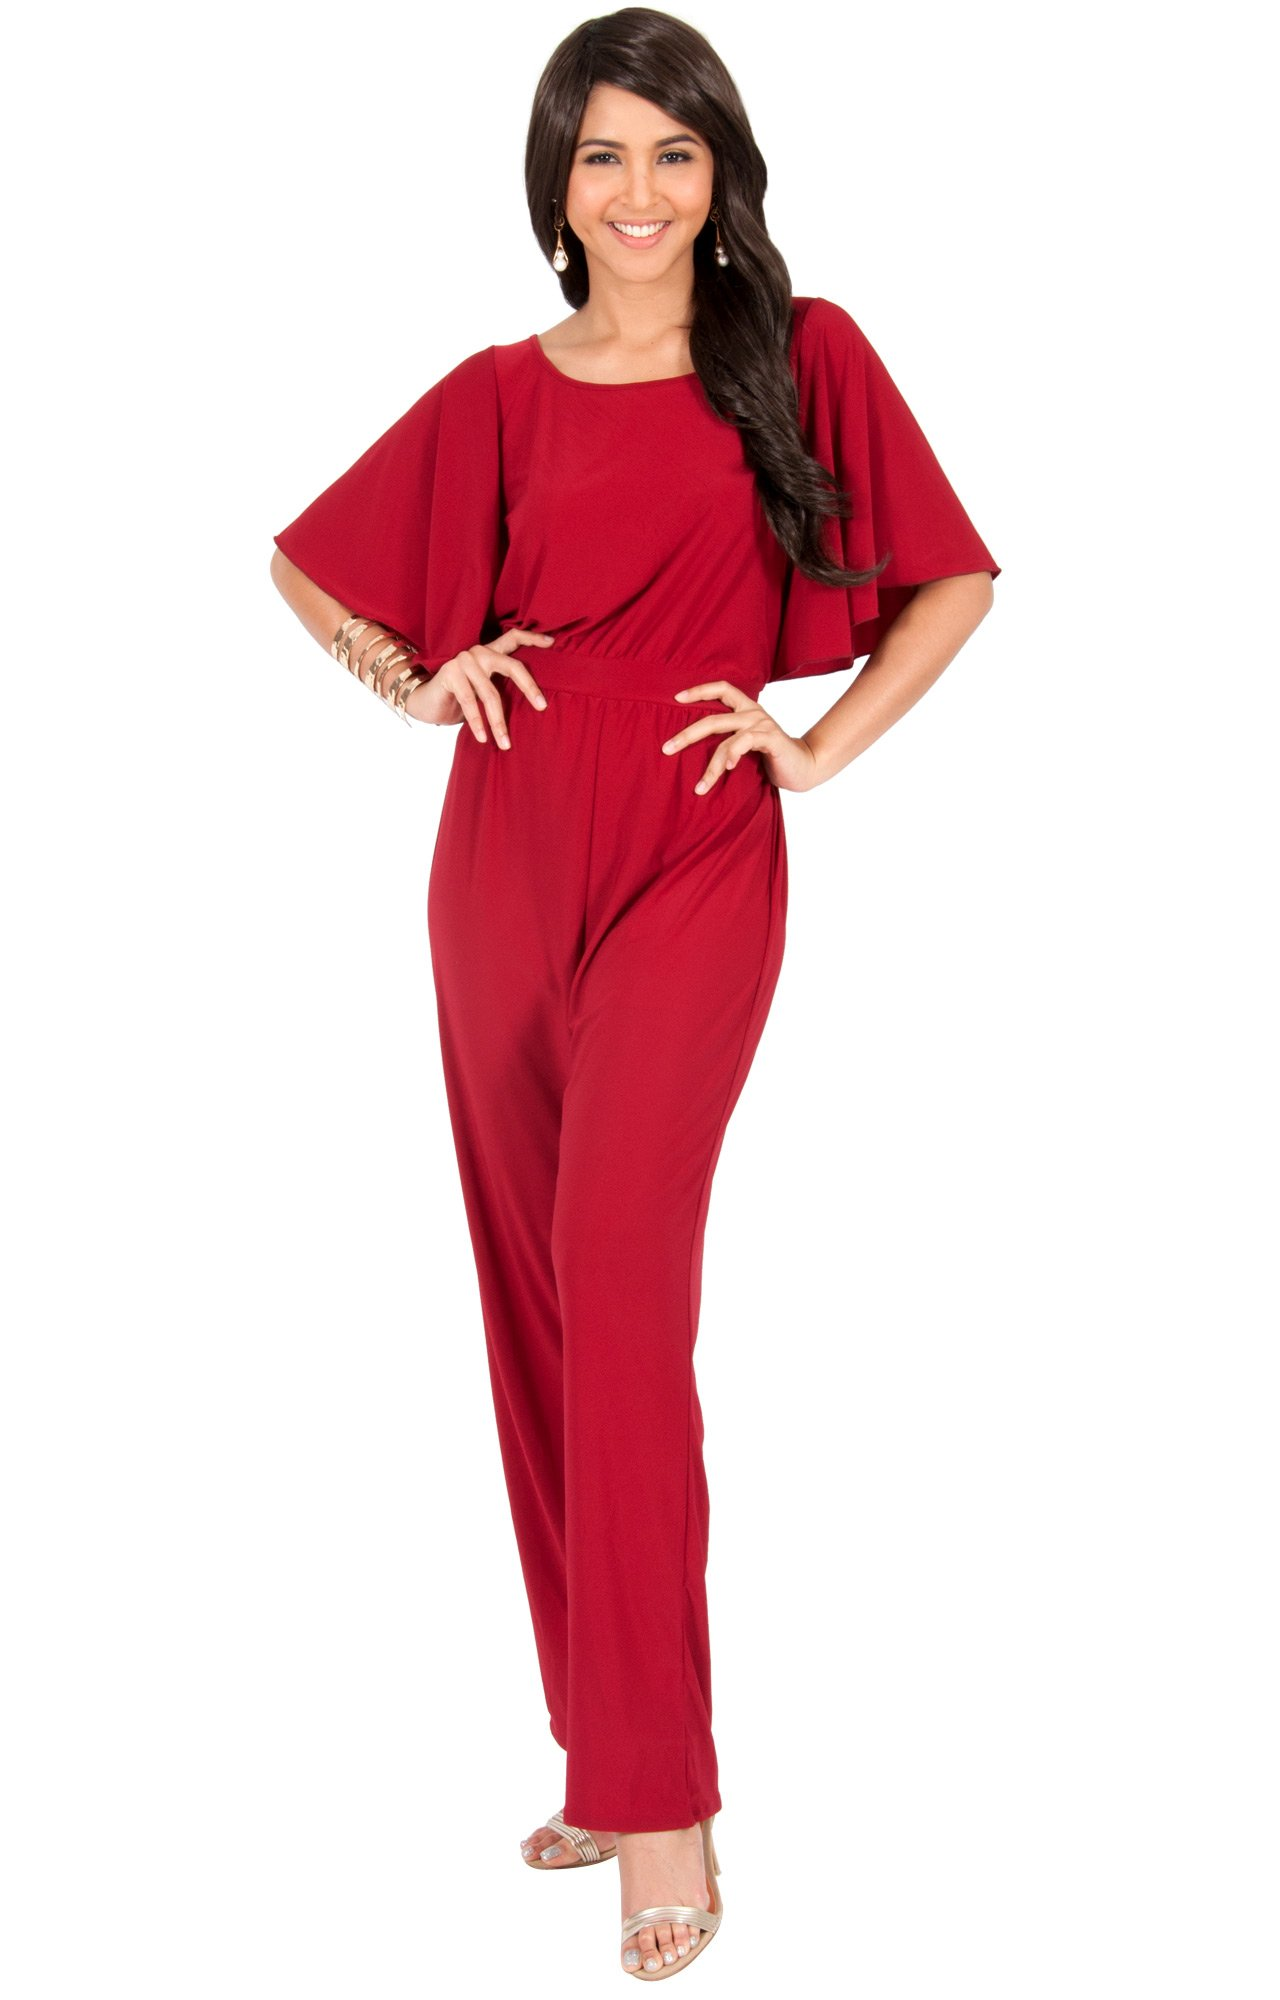 d84d7494486f KOH KOH Plus Size Women Short Sleeve Wide Leg Long Casual Cocktail Pants  One Piece Jumpsuit Jumpsuits Pant Suit Suits Romper Rompers Playsuit  Playsuits